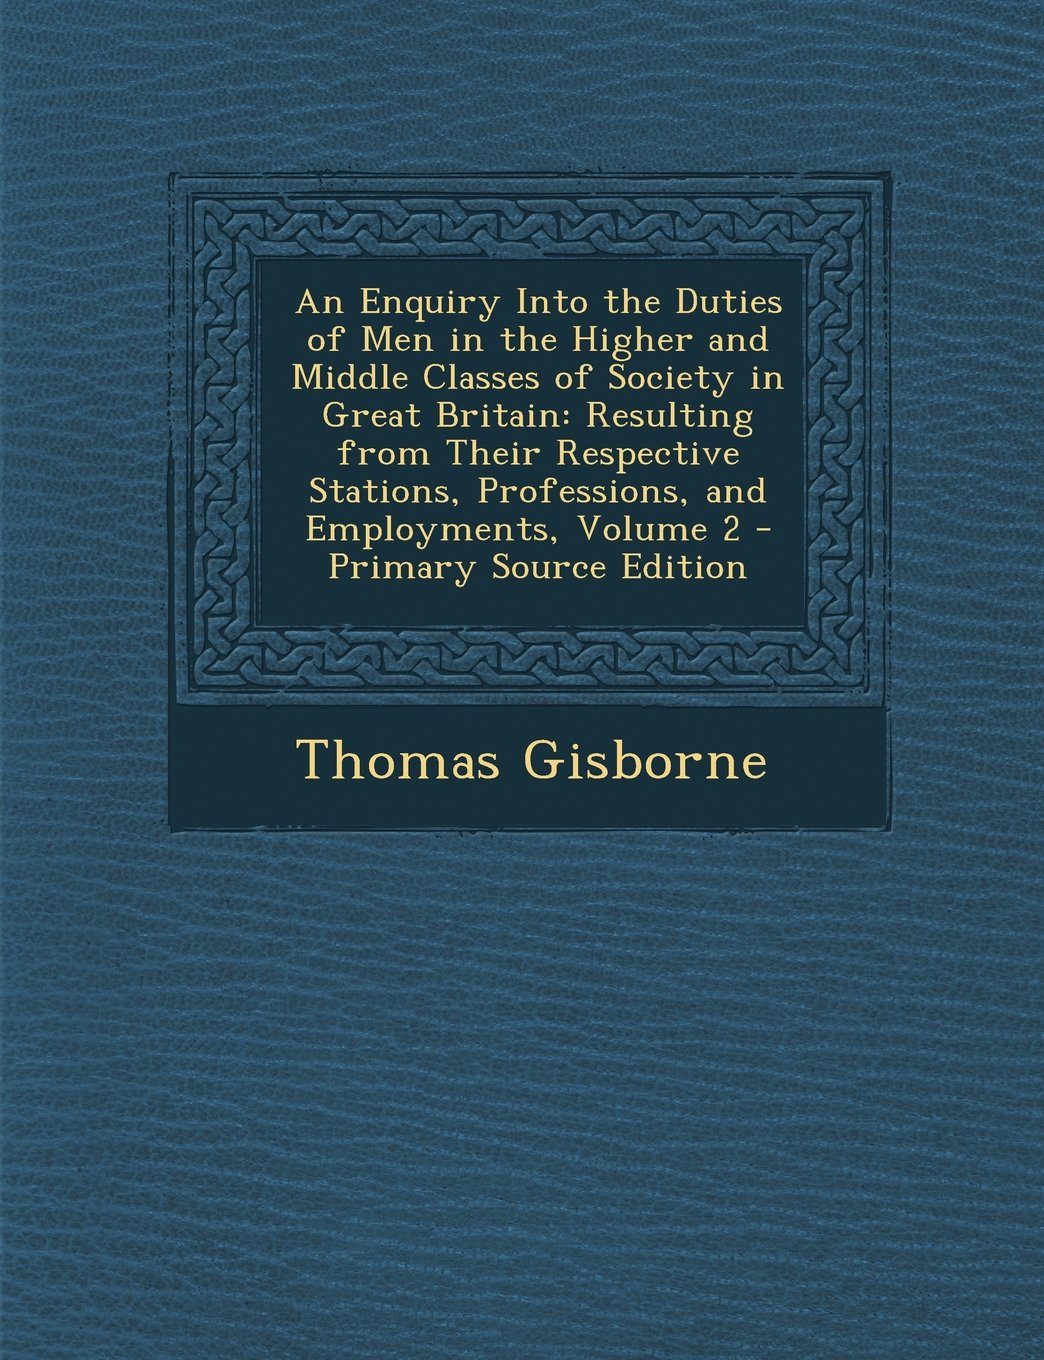 Download An Enquiry Into the Duties of Men in the Higher and Middle Classes of Society in Great Britain: Resulting from Their Respective Stations, Professions, and Employments, Volume 2 PDF